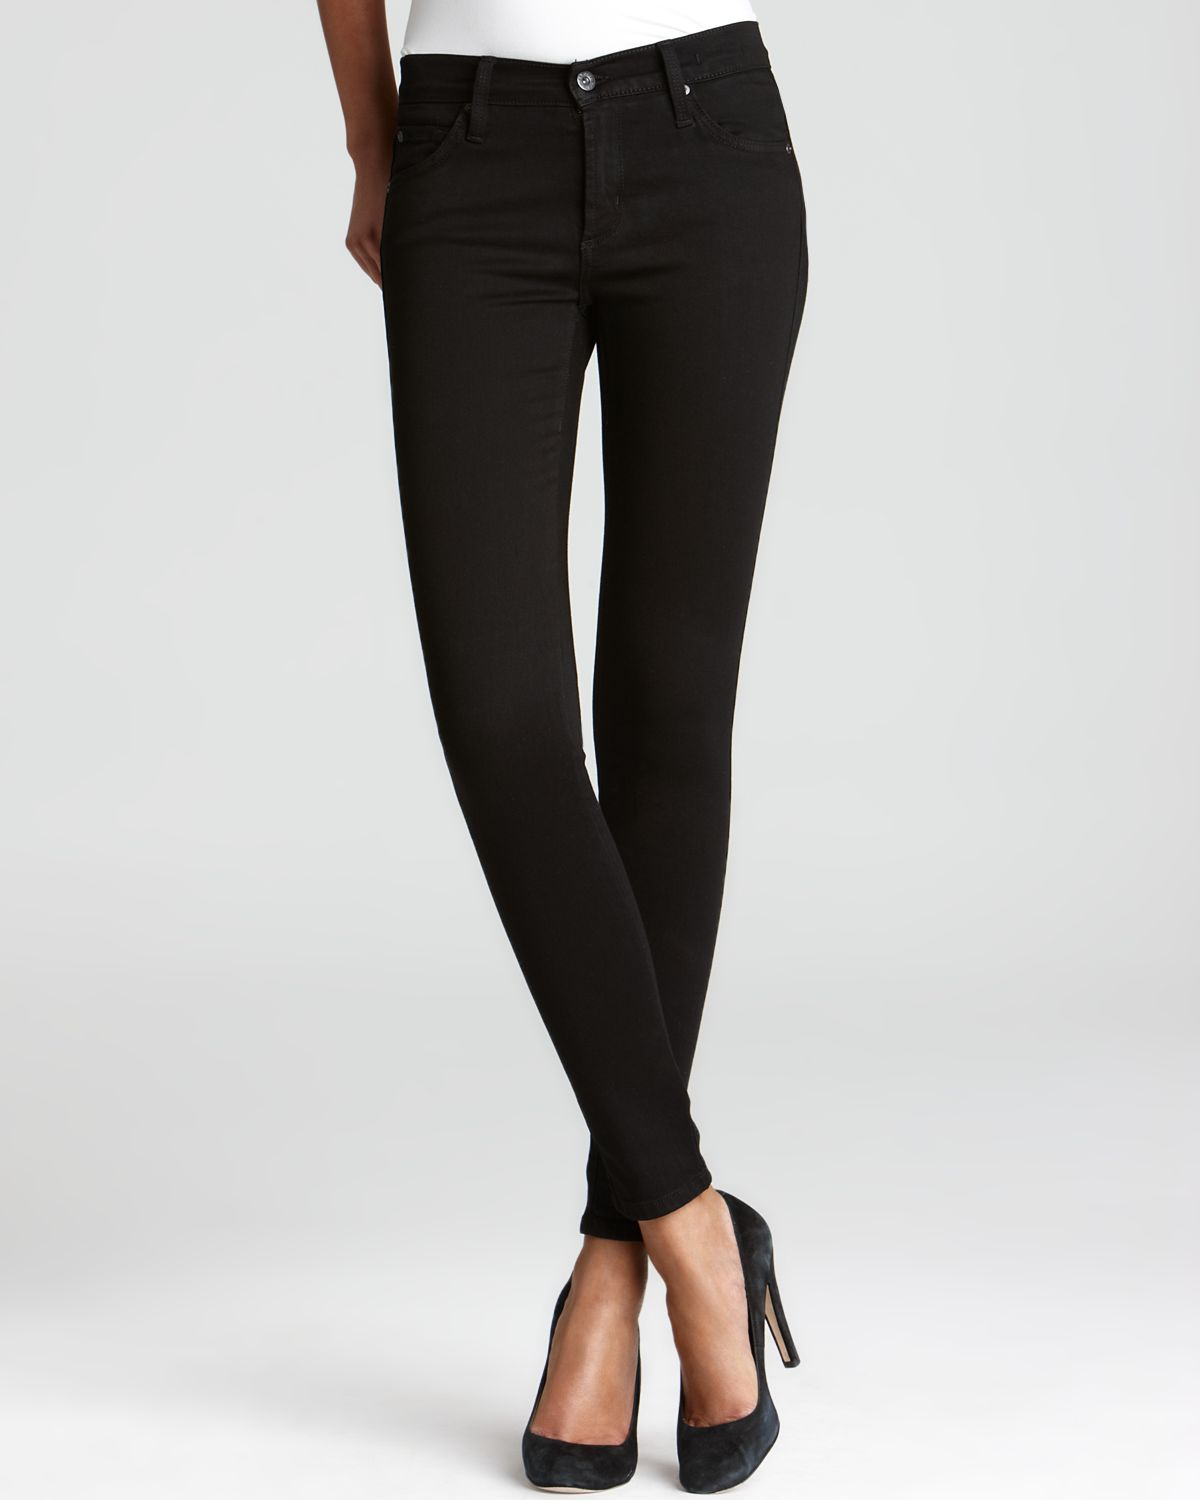 James Jeans Legging Jeans - Twiggy in Black | Bloomingdale's